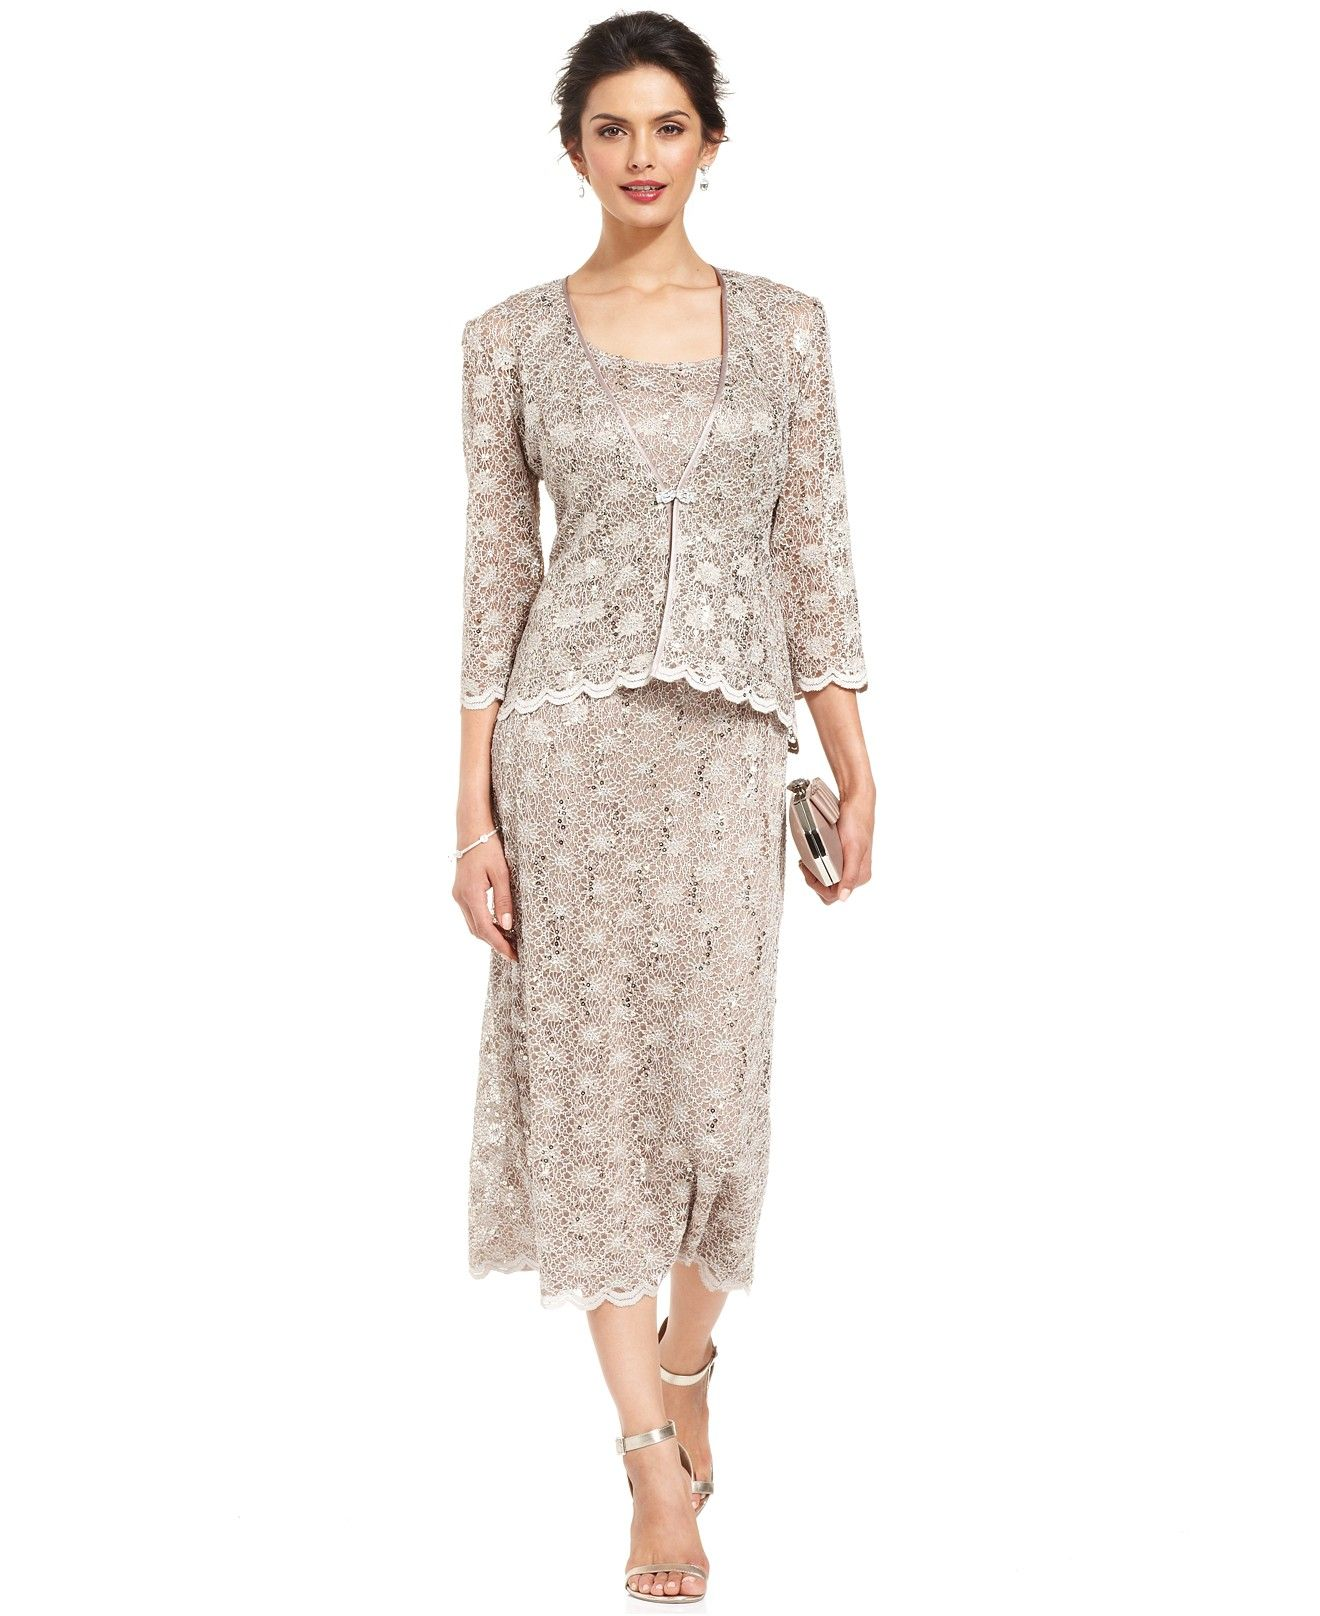 R m richards sleeveless sequined lace dress and jacket for Macy wedding dresses mother of the bride